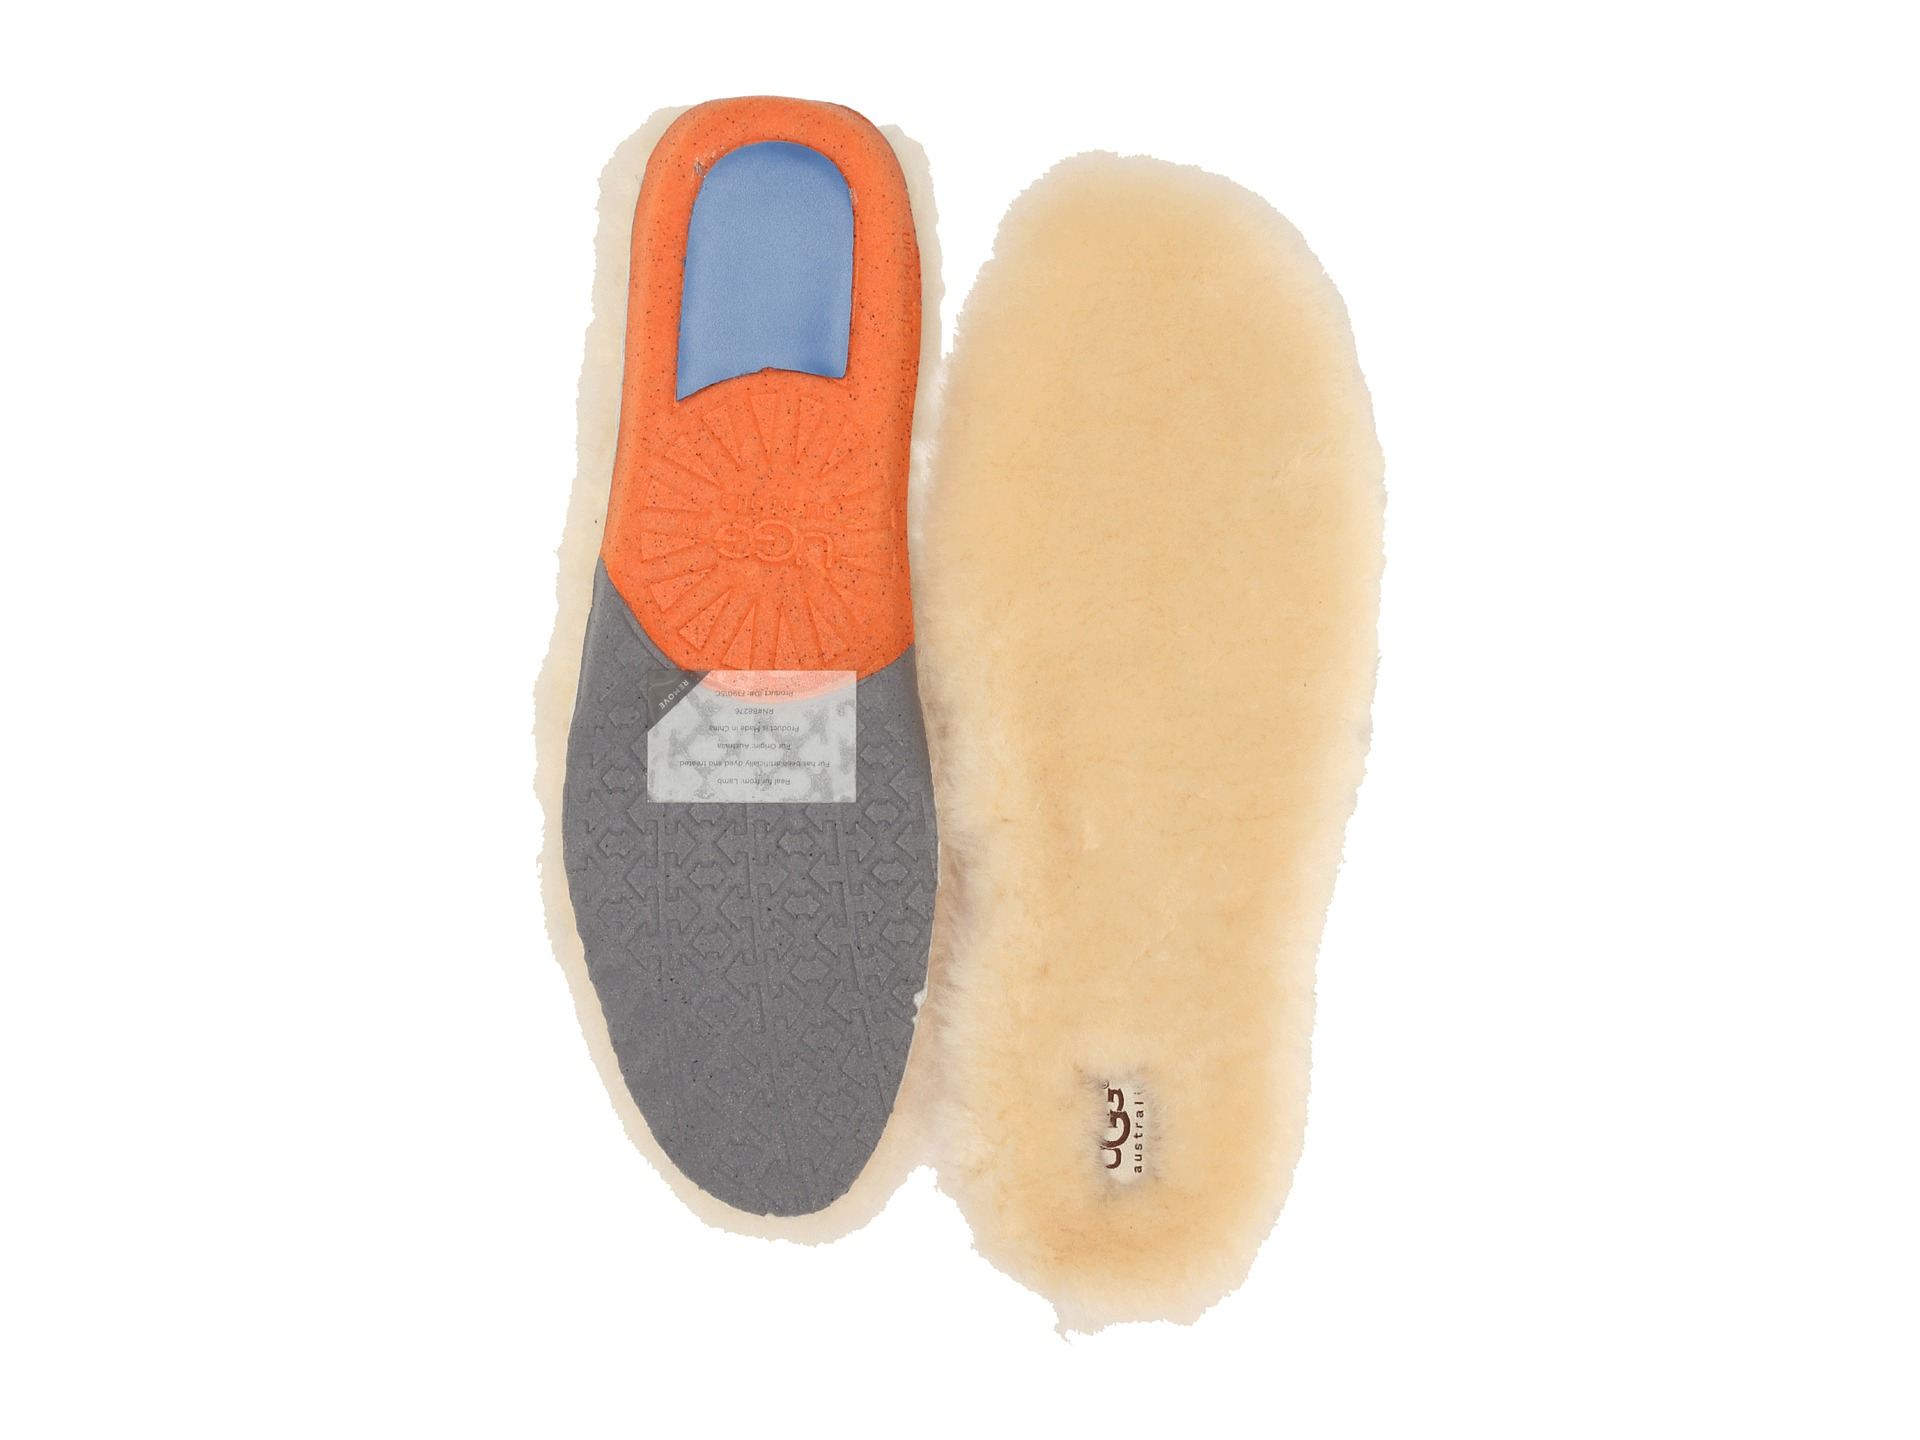 ugg replacement insoles for boots